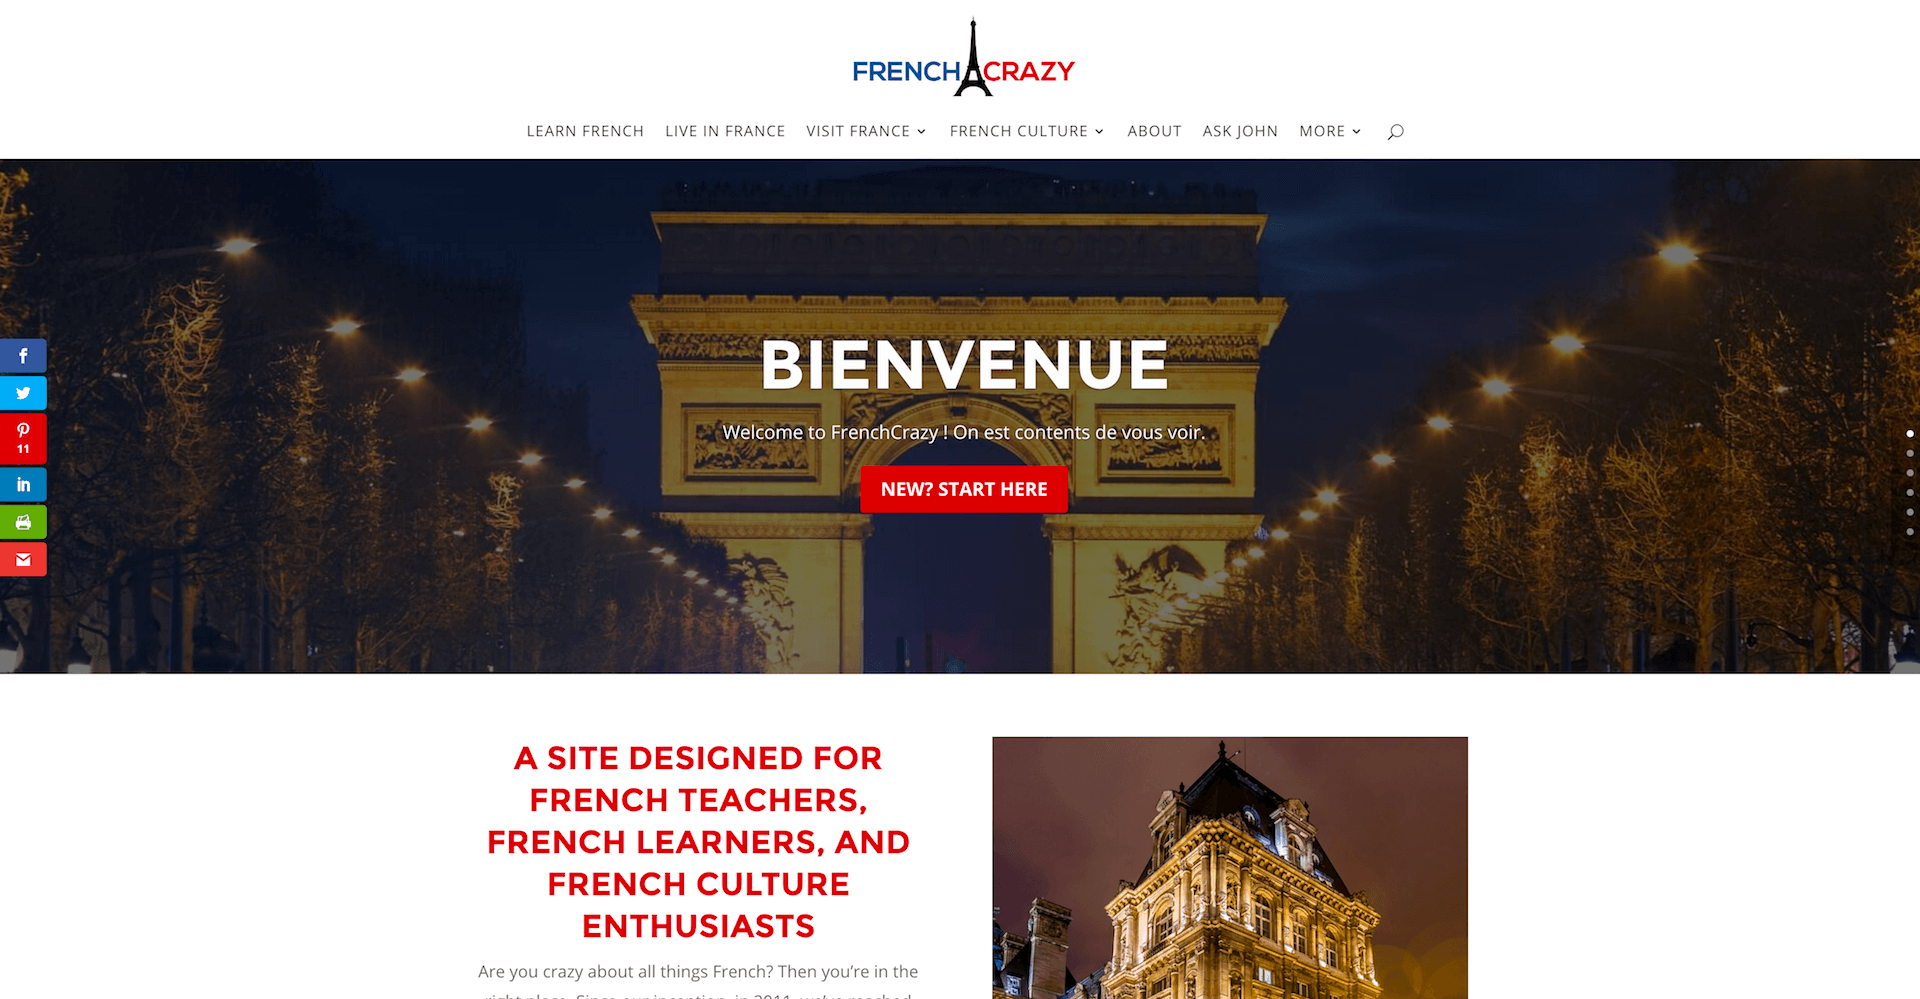 history of FrenchCrazy